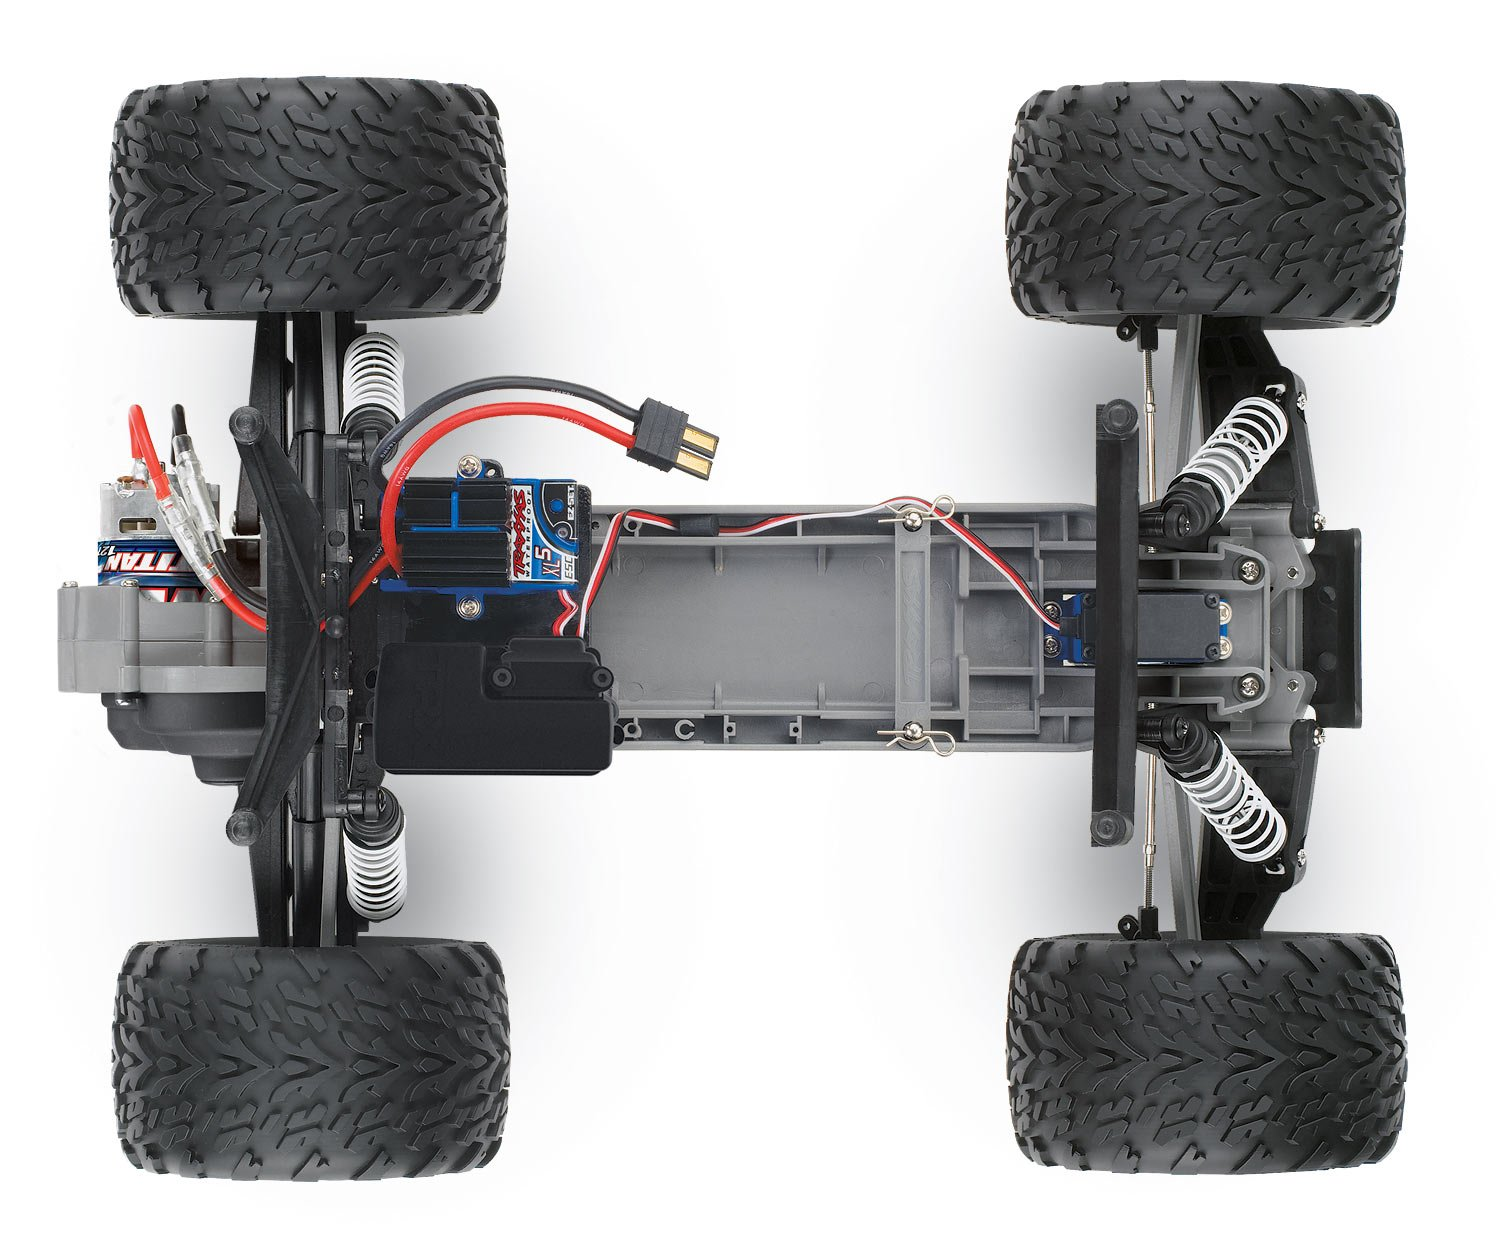 Traxxas 36054 The Stampede Xl 5 Truck Toys Games Thread 4x4 Vxl Press Release And Pics